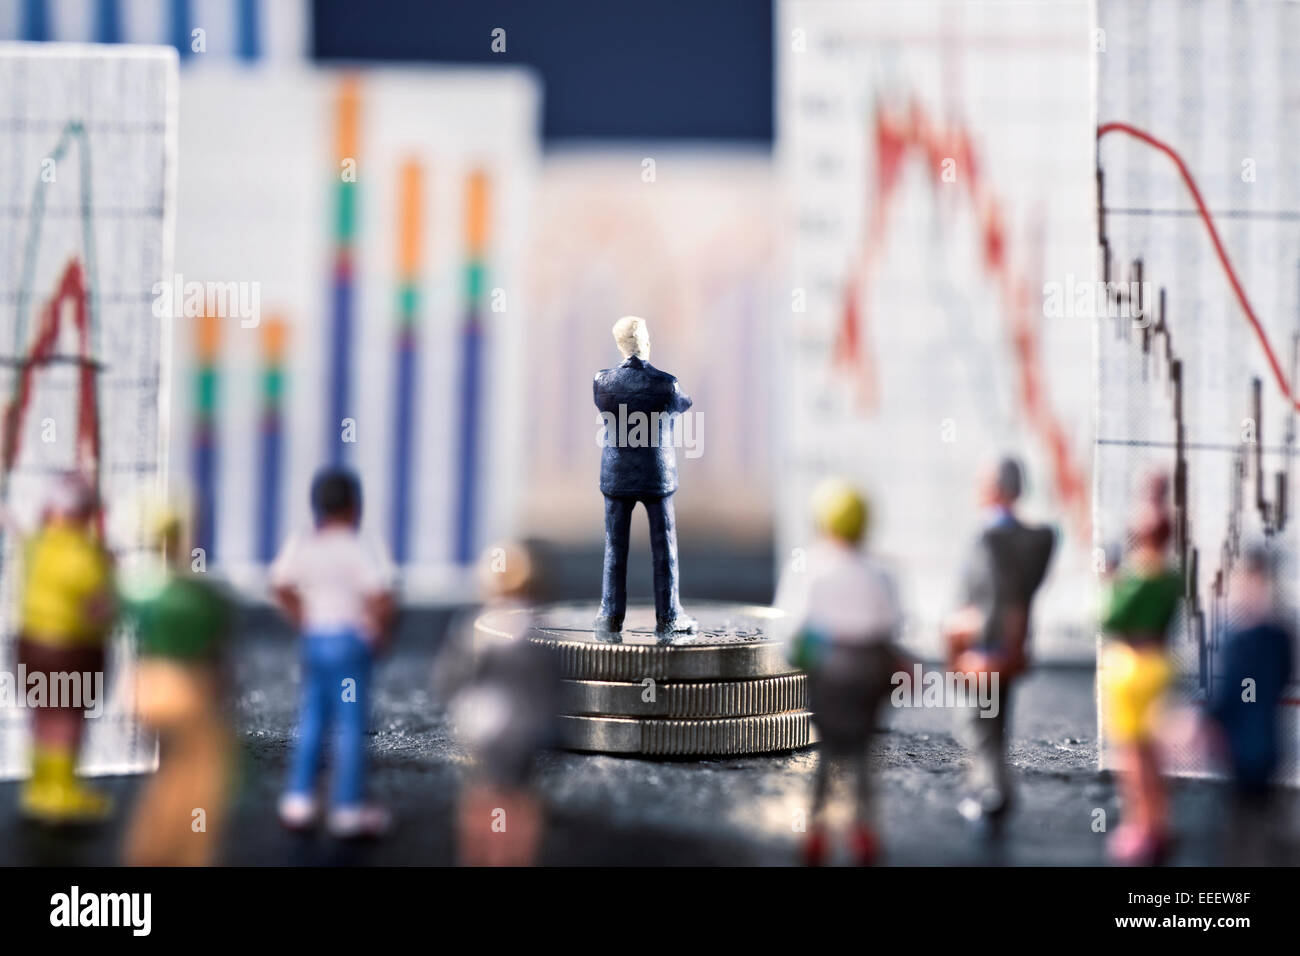 Banker looks on boards with various charts, symbolizing the ups and downs in the markets. He stands on a base of Stock Photo